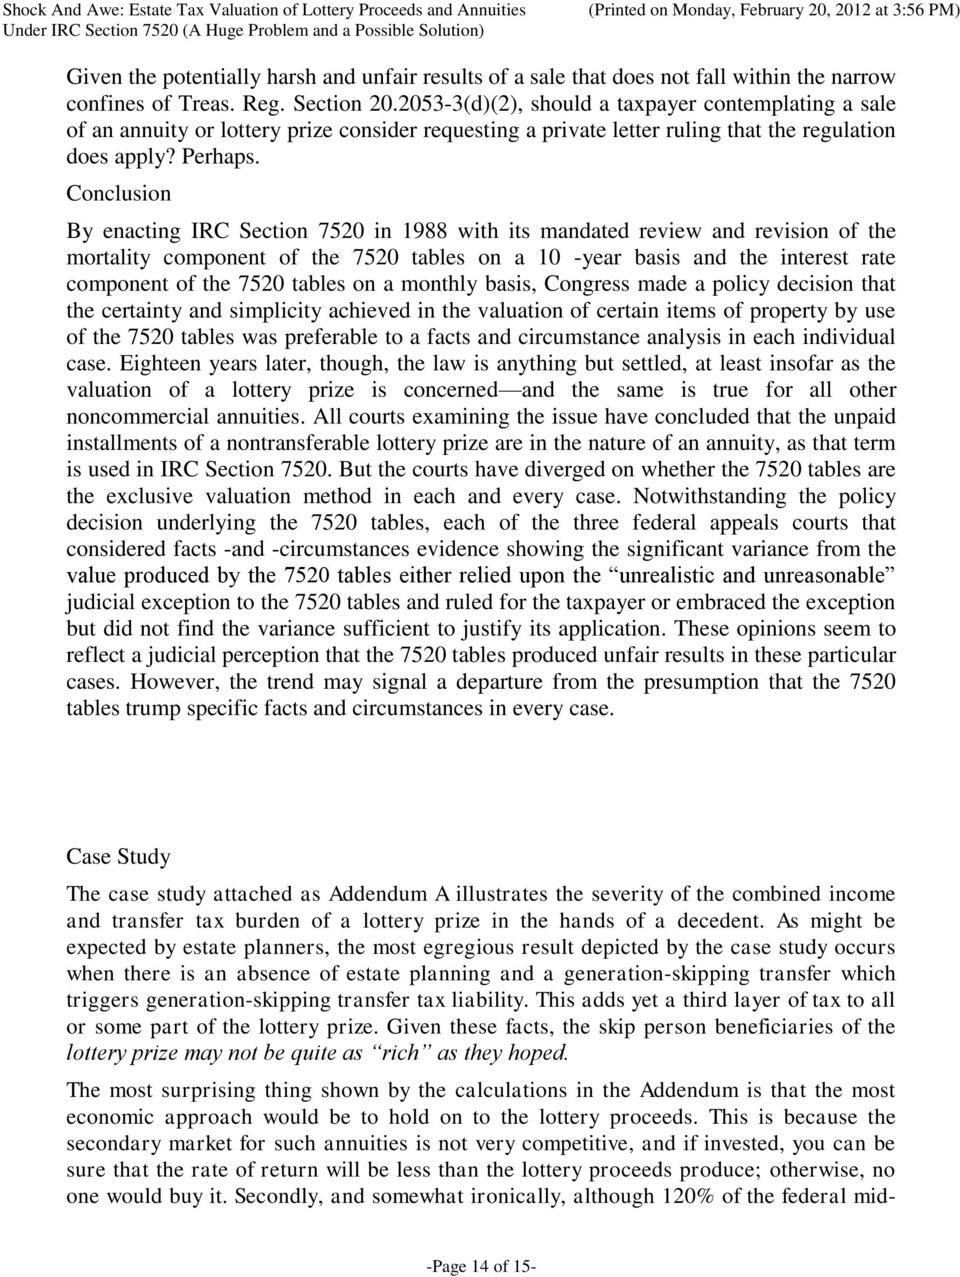 Conclusion By enacting IRC Section 7520 in 1988 with its mandated review and revision of the mortality component of the 7520 tables on a 10 -year basis and the interest rate component of the 7520